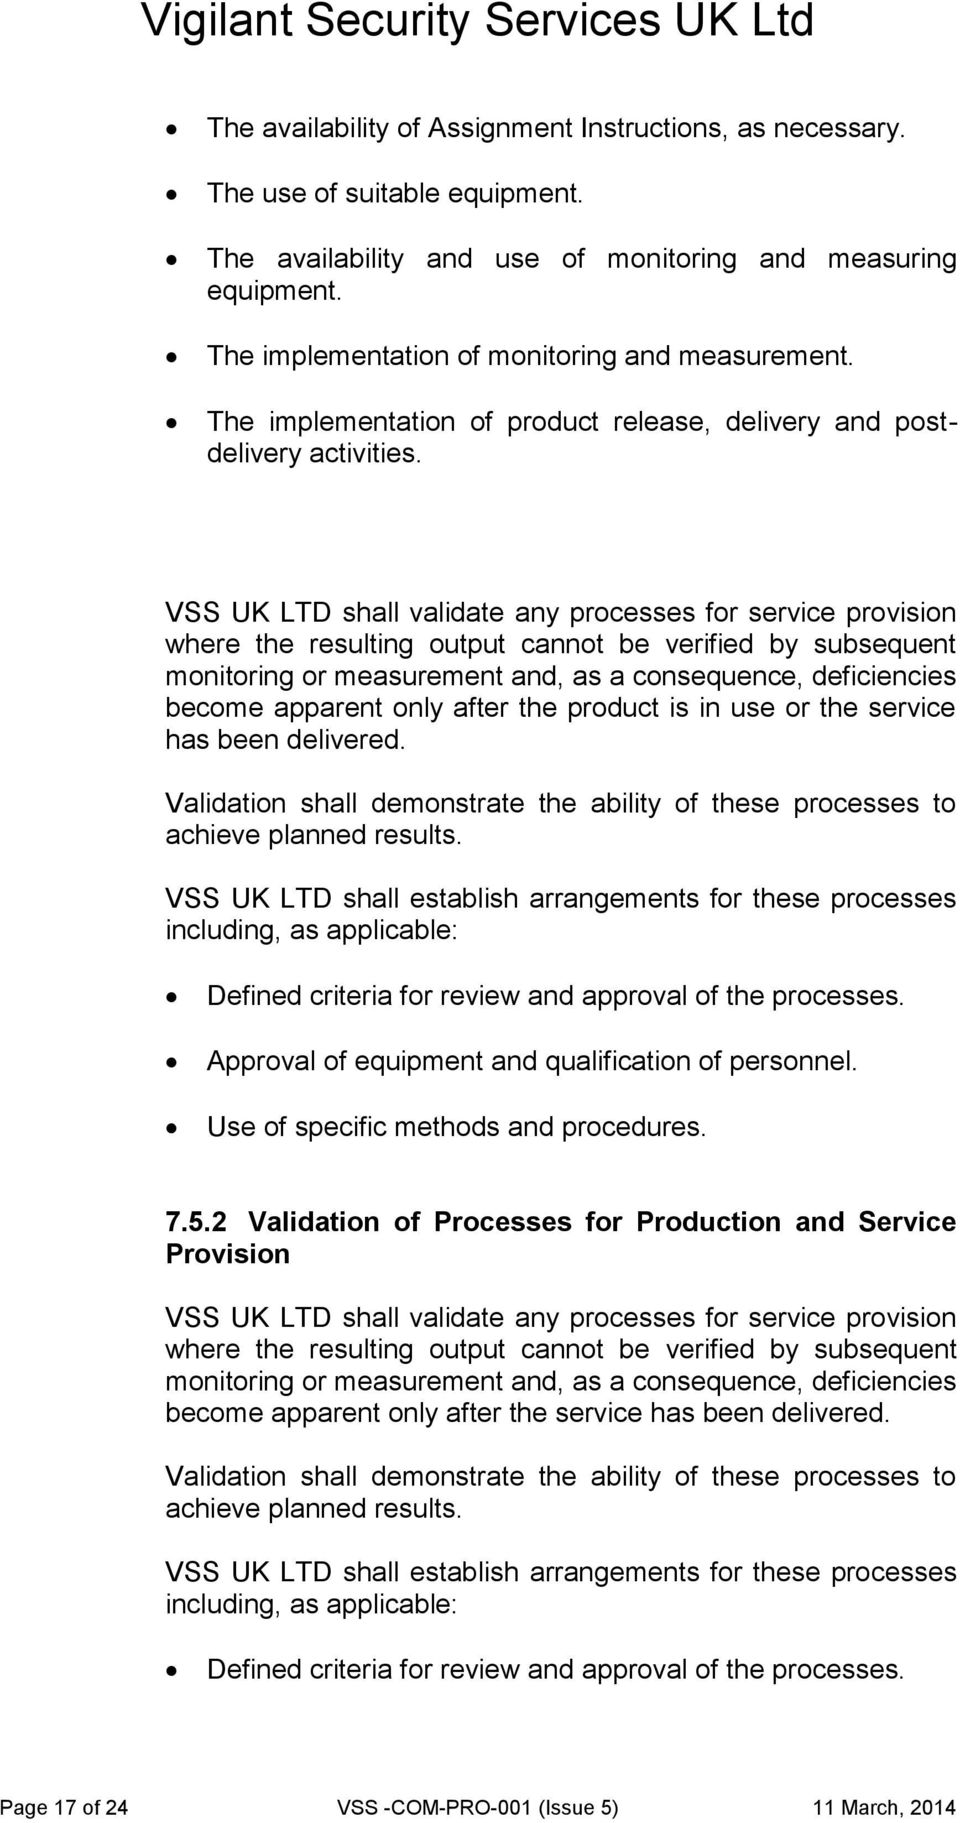 VSS UK LTD shall validate any processes for service provision where the resulting output cannot be verified by subsequent monitoring or measurement and, as a consequence, deficiencies become apparent